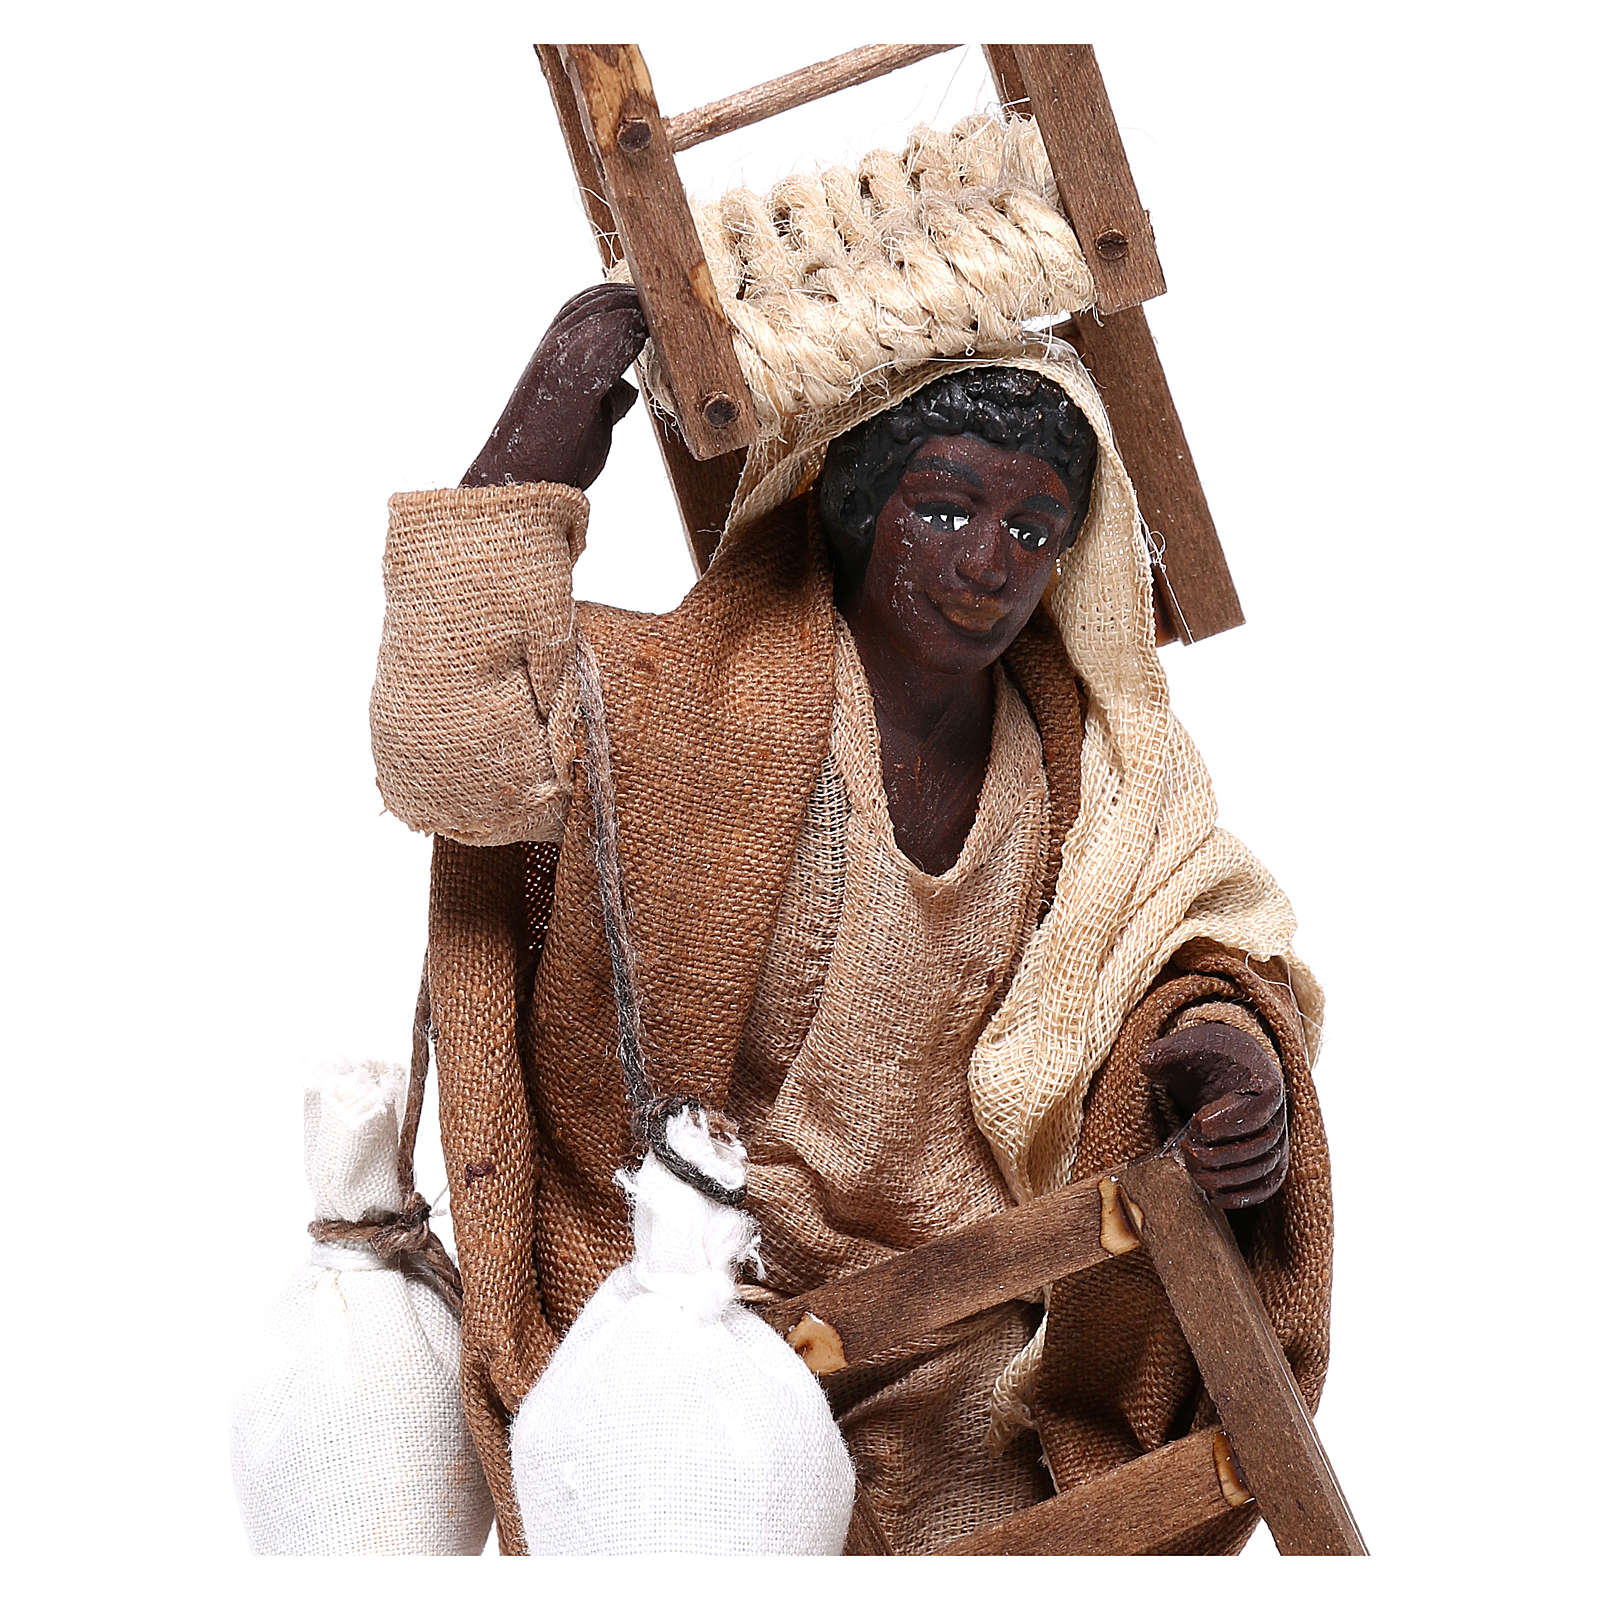 Moor man with chair on his head and in his hands 12 cm for Neapolitan nativity scene 4